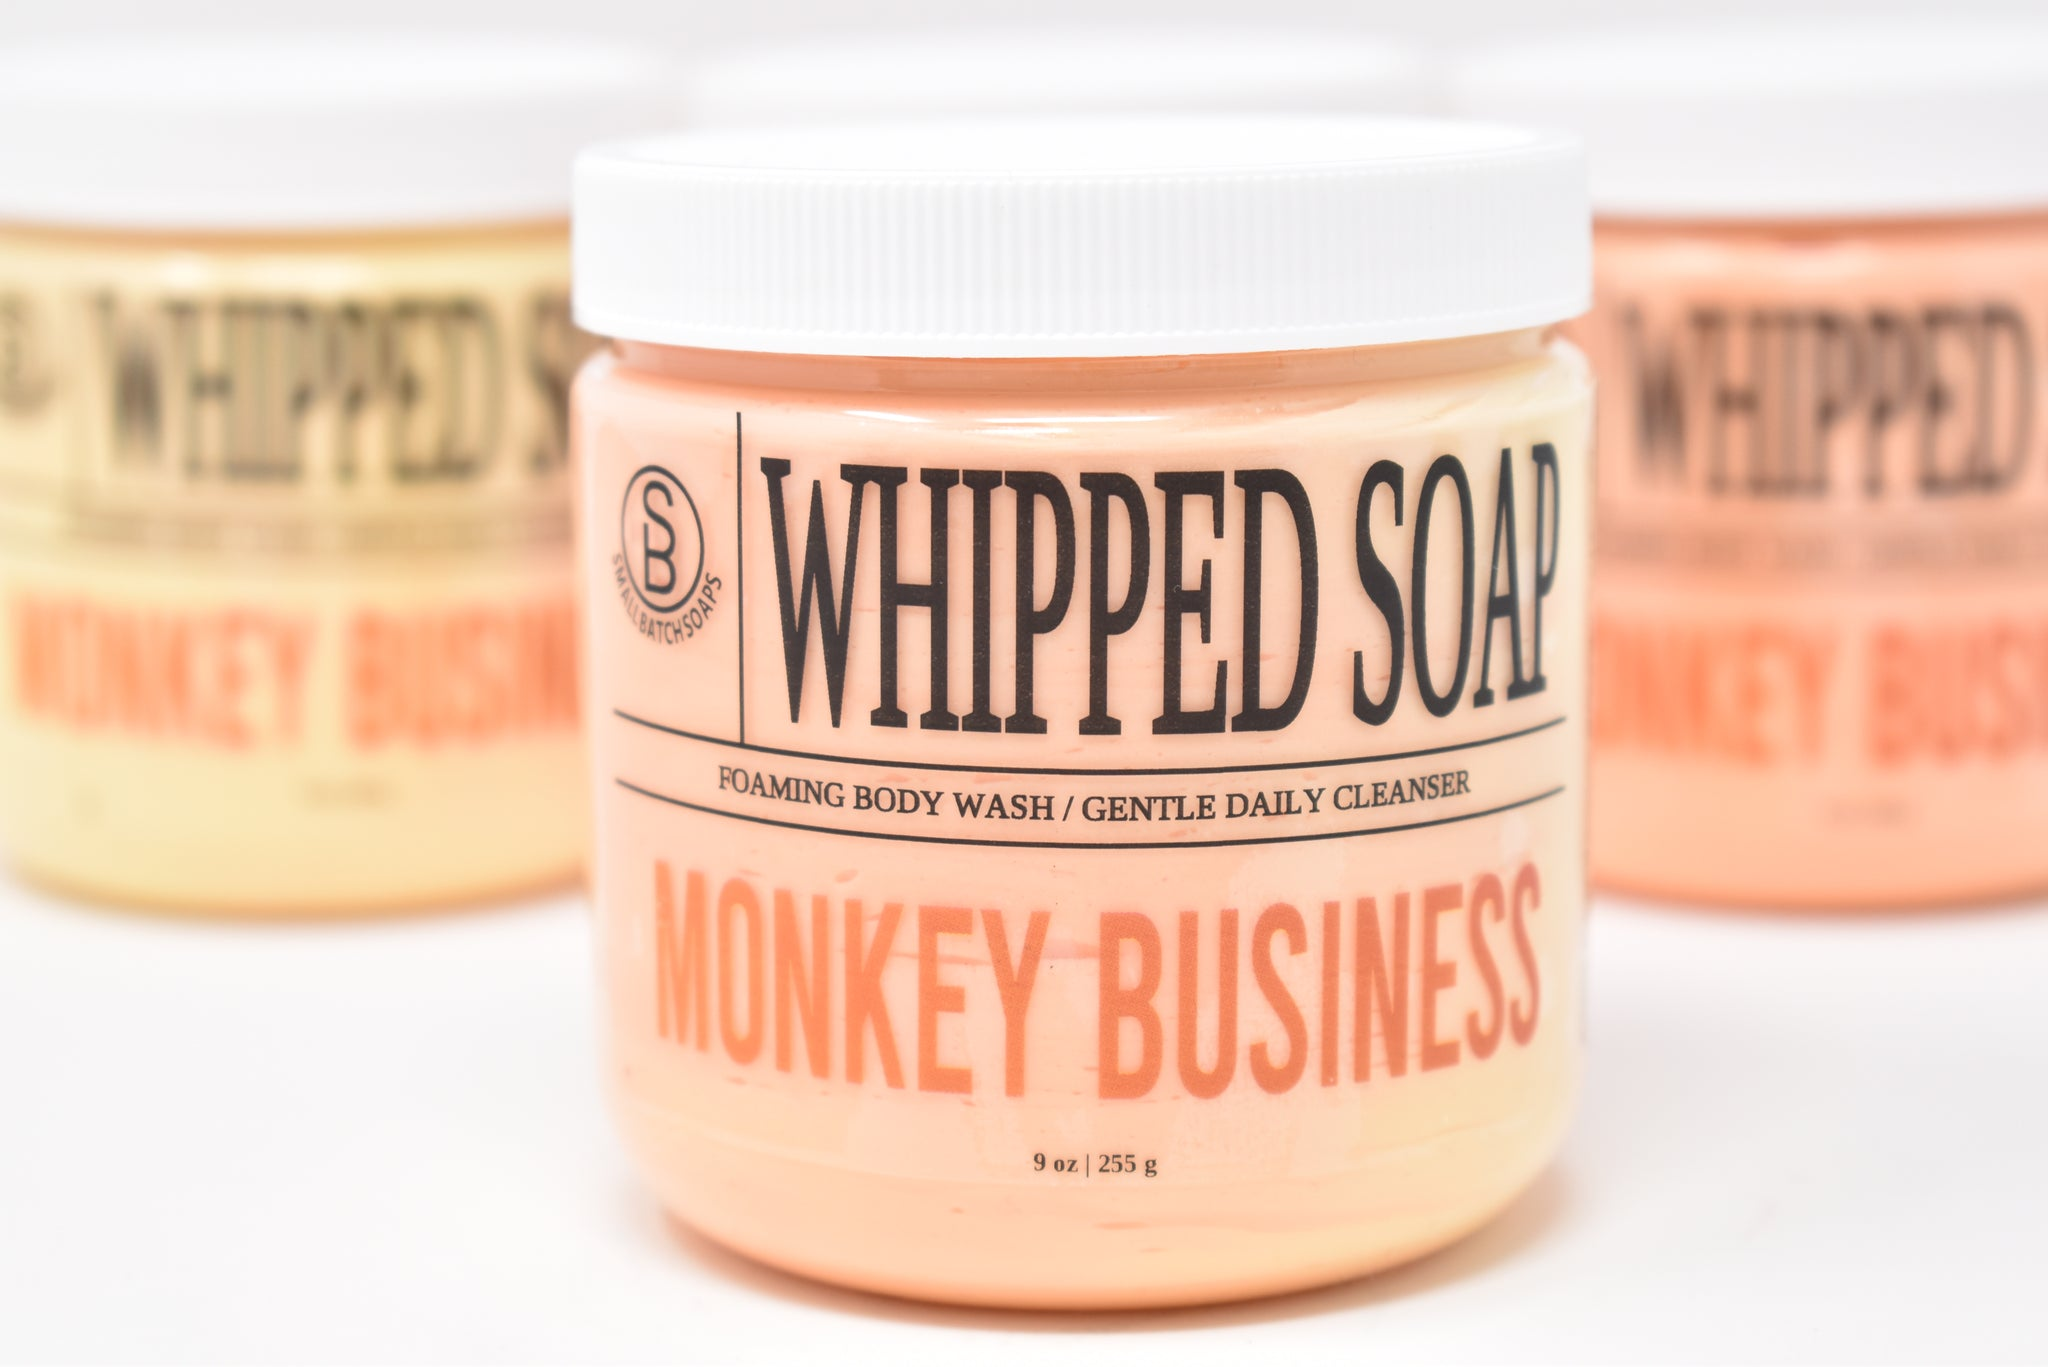 Monkey Business Whipped Soap - Foaming Body Wash